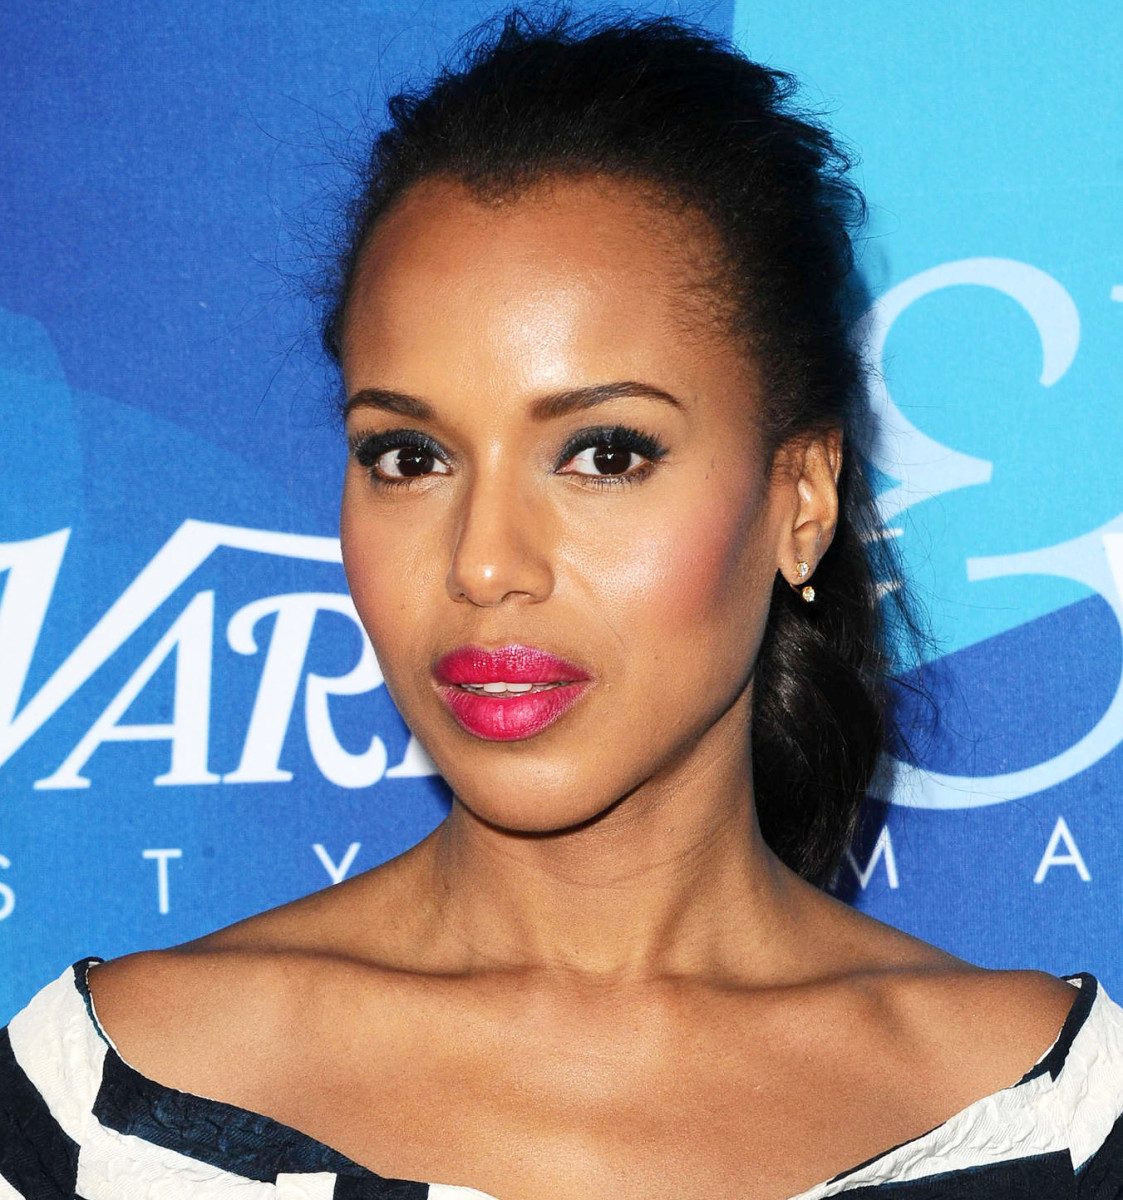 Kerry Washington is already a celebrity face for Neutrogena